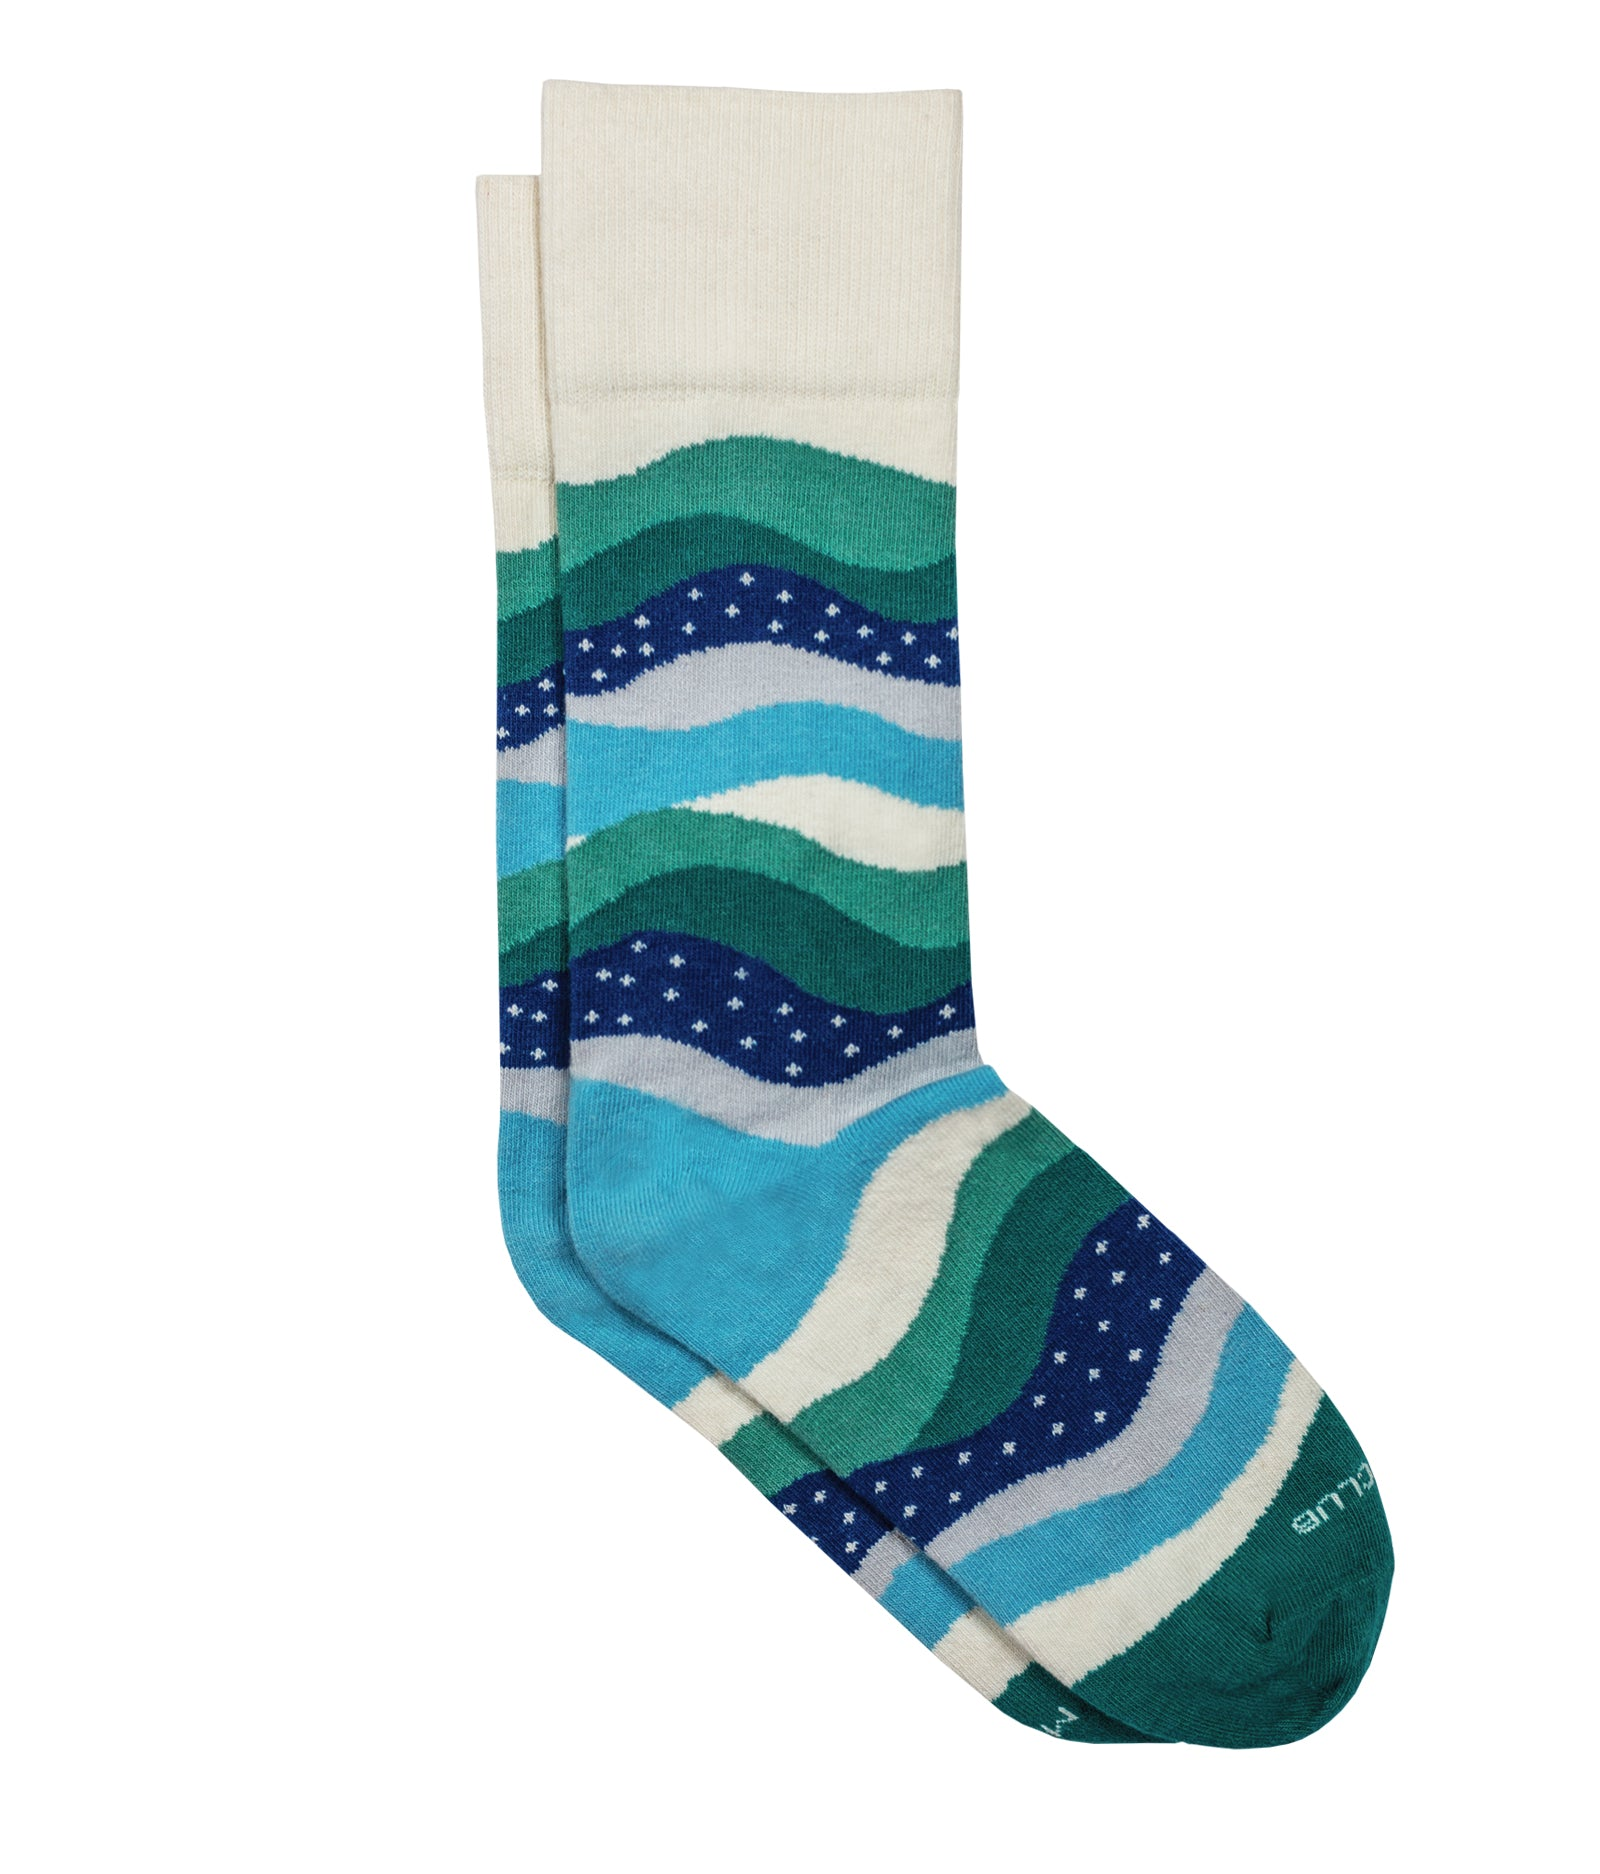 The Glaser - Seafoam - Sock Club Store